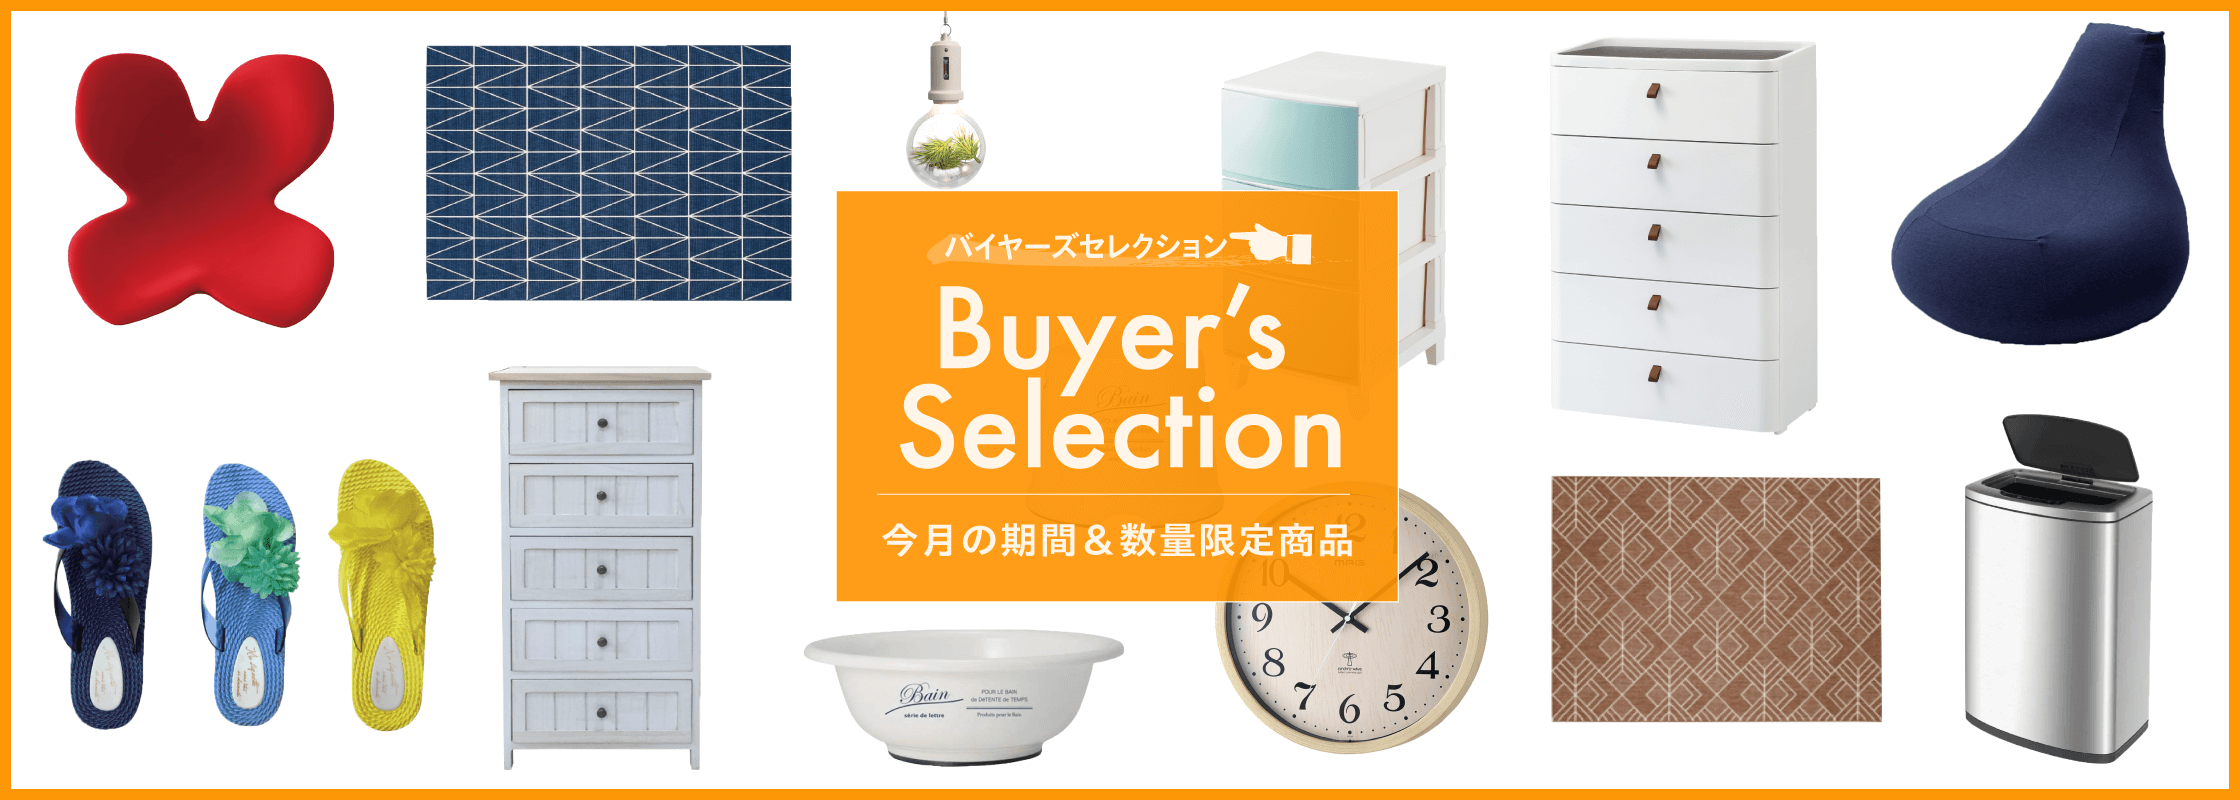 buyer's-selection_bn0407_big